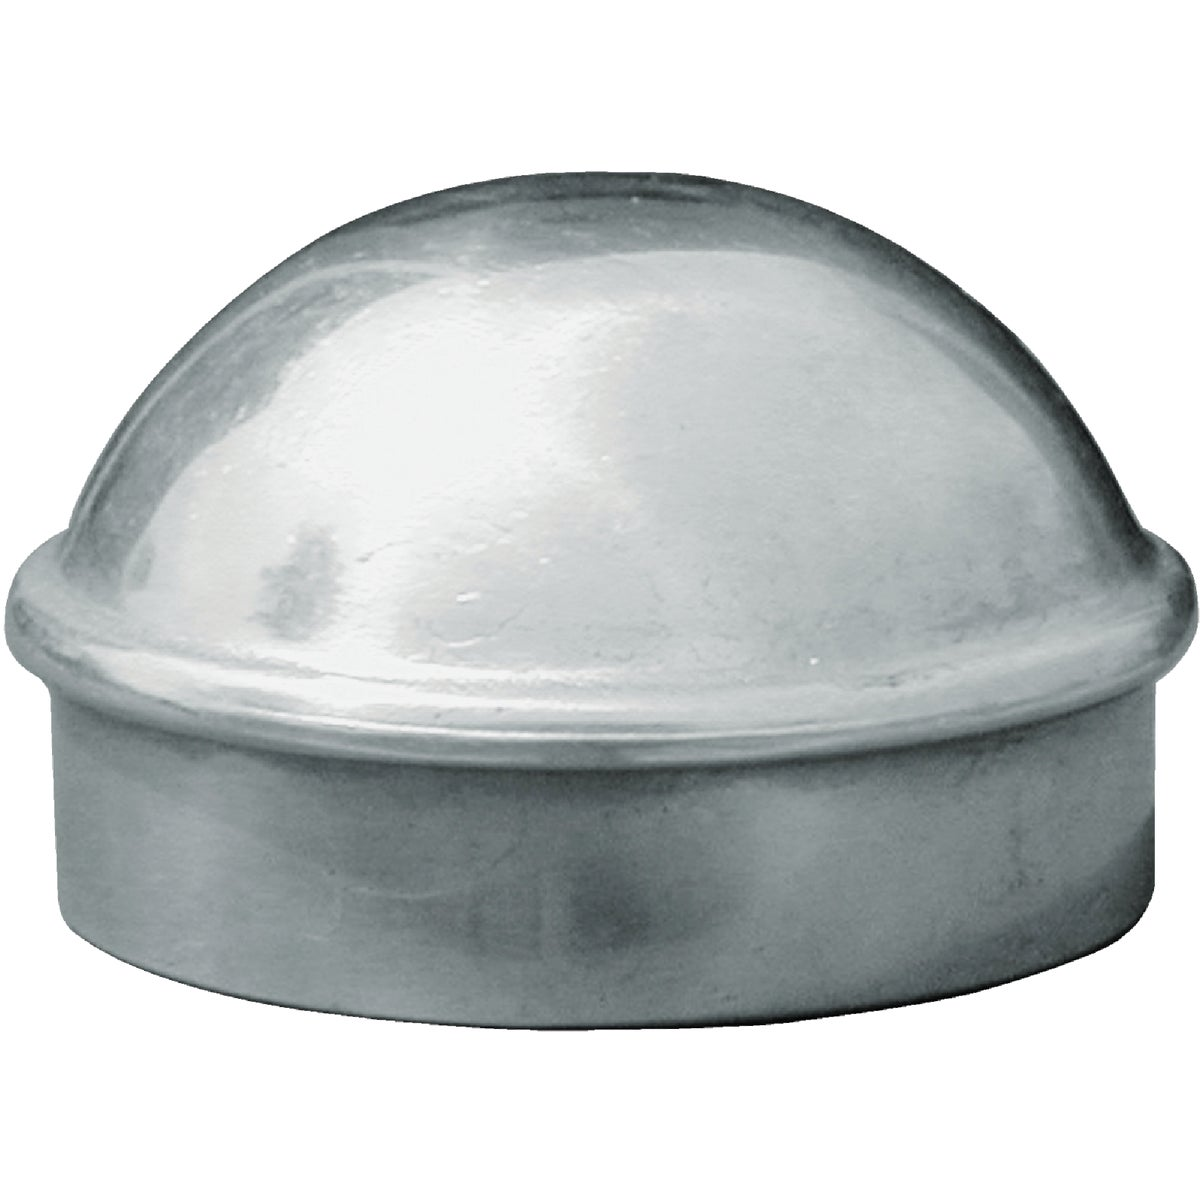 "2-3/8"" POST CAP - 328558B by Midwest Air Tech"